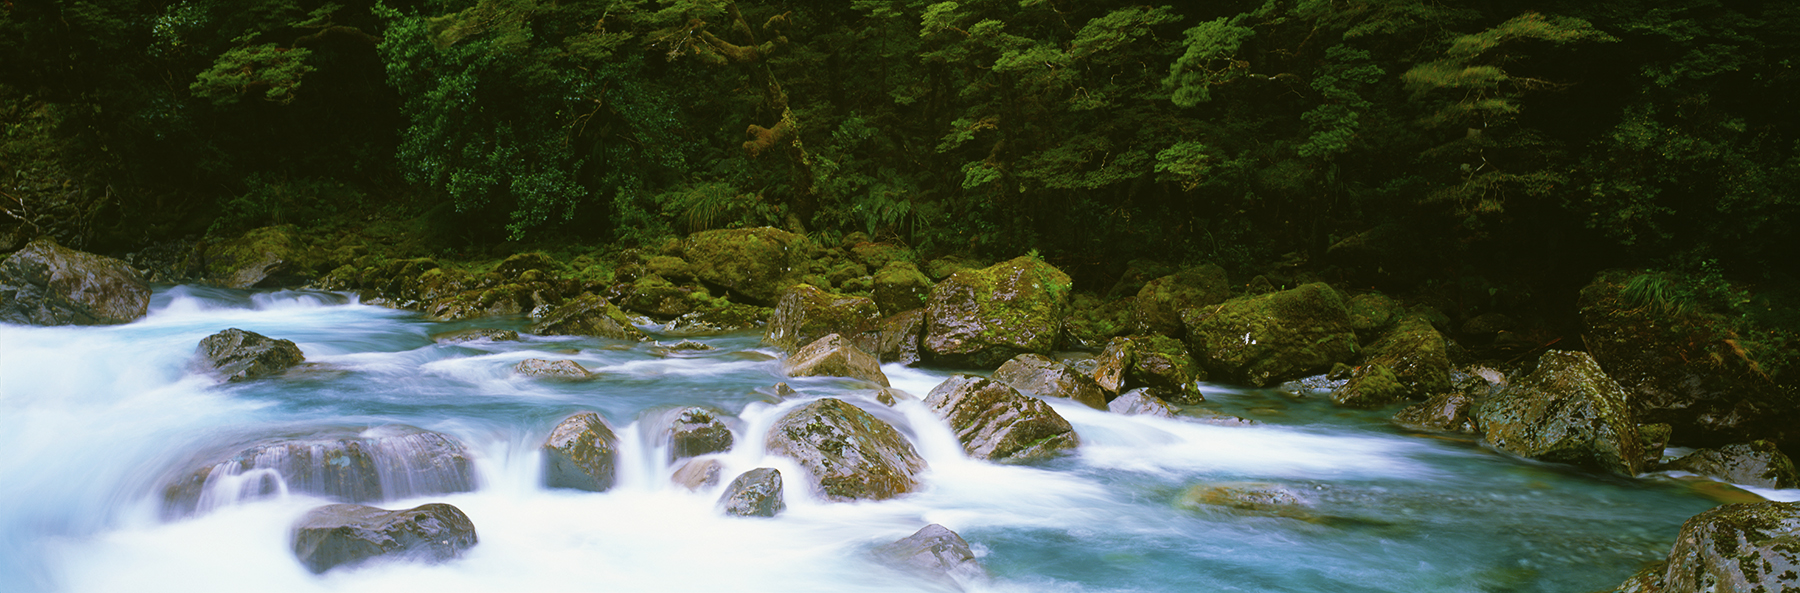 Hollyford Treasure, Fiordland, New Zealand. A Limited Edition Fine Art Landscape Photograph by Richard Hume